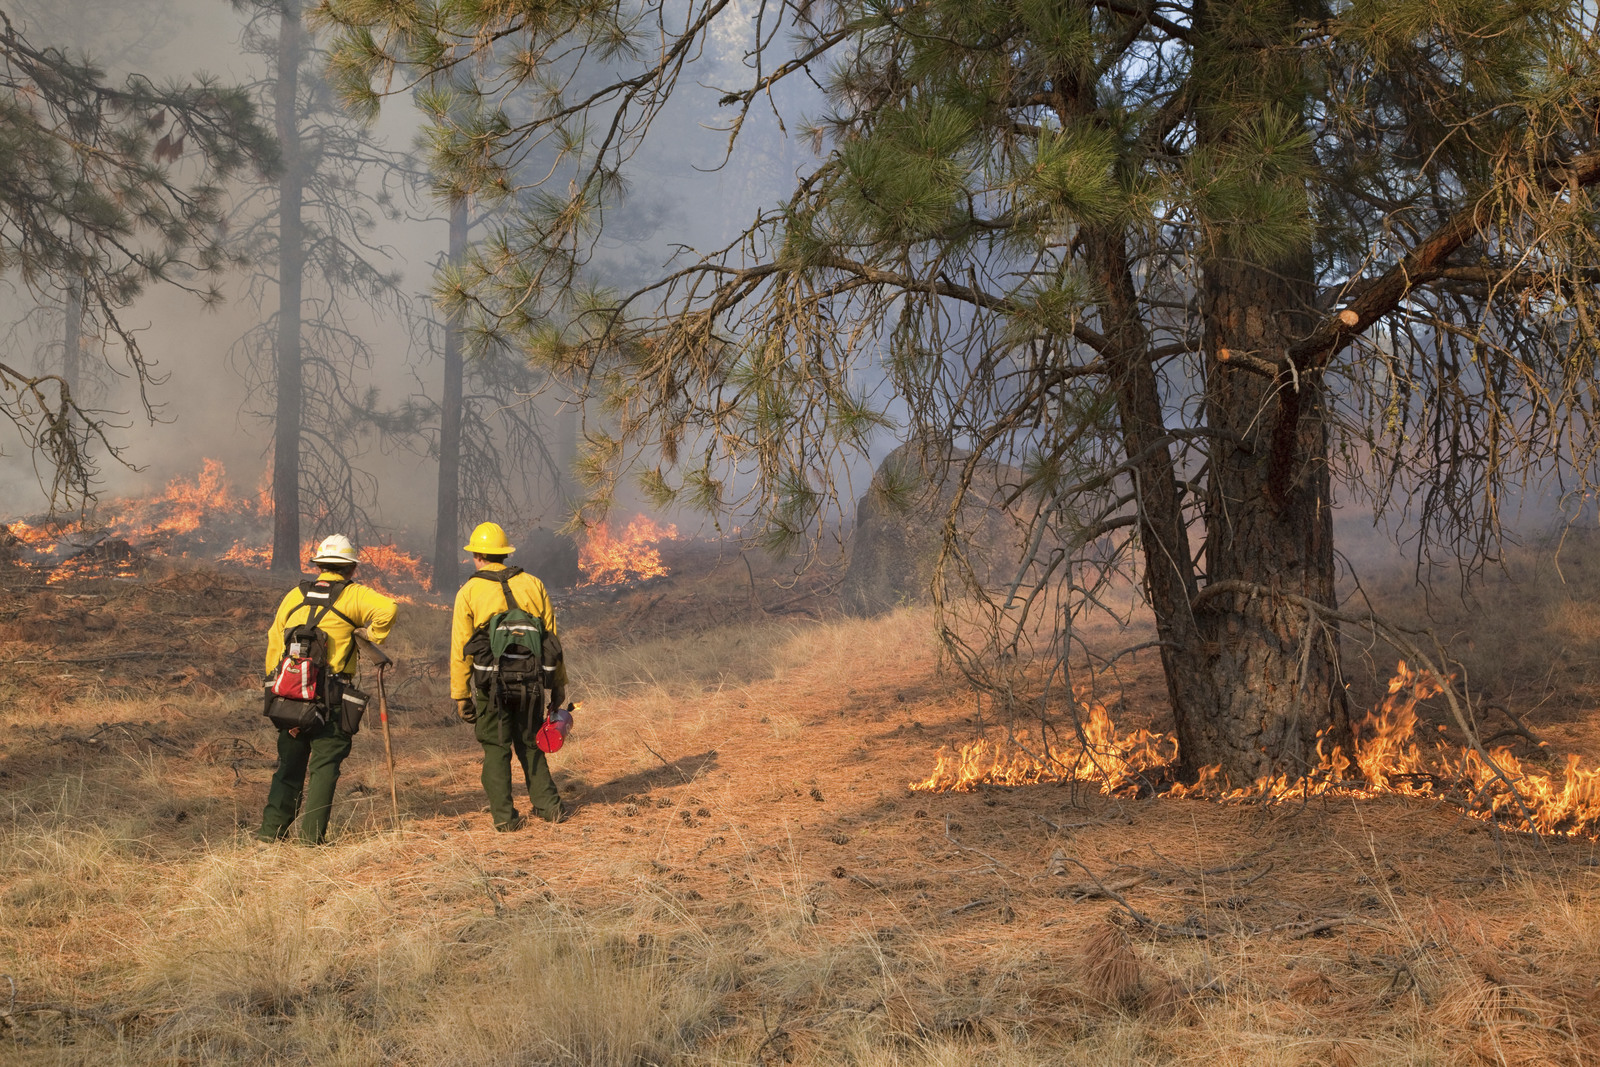 A prescribed fire in a ponderosa pine forest in the Sinlahekin Wildlife Area in Okanogan County. Prescribed burns are one way to create resilience in our landscapes. Photo © John Marshall.